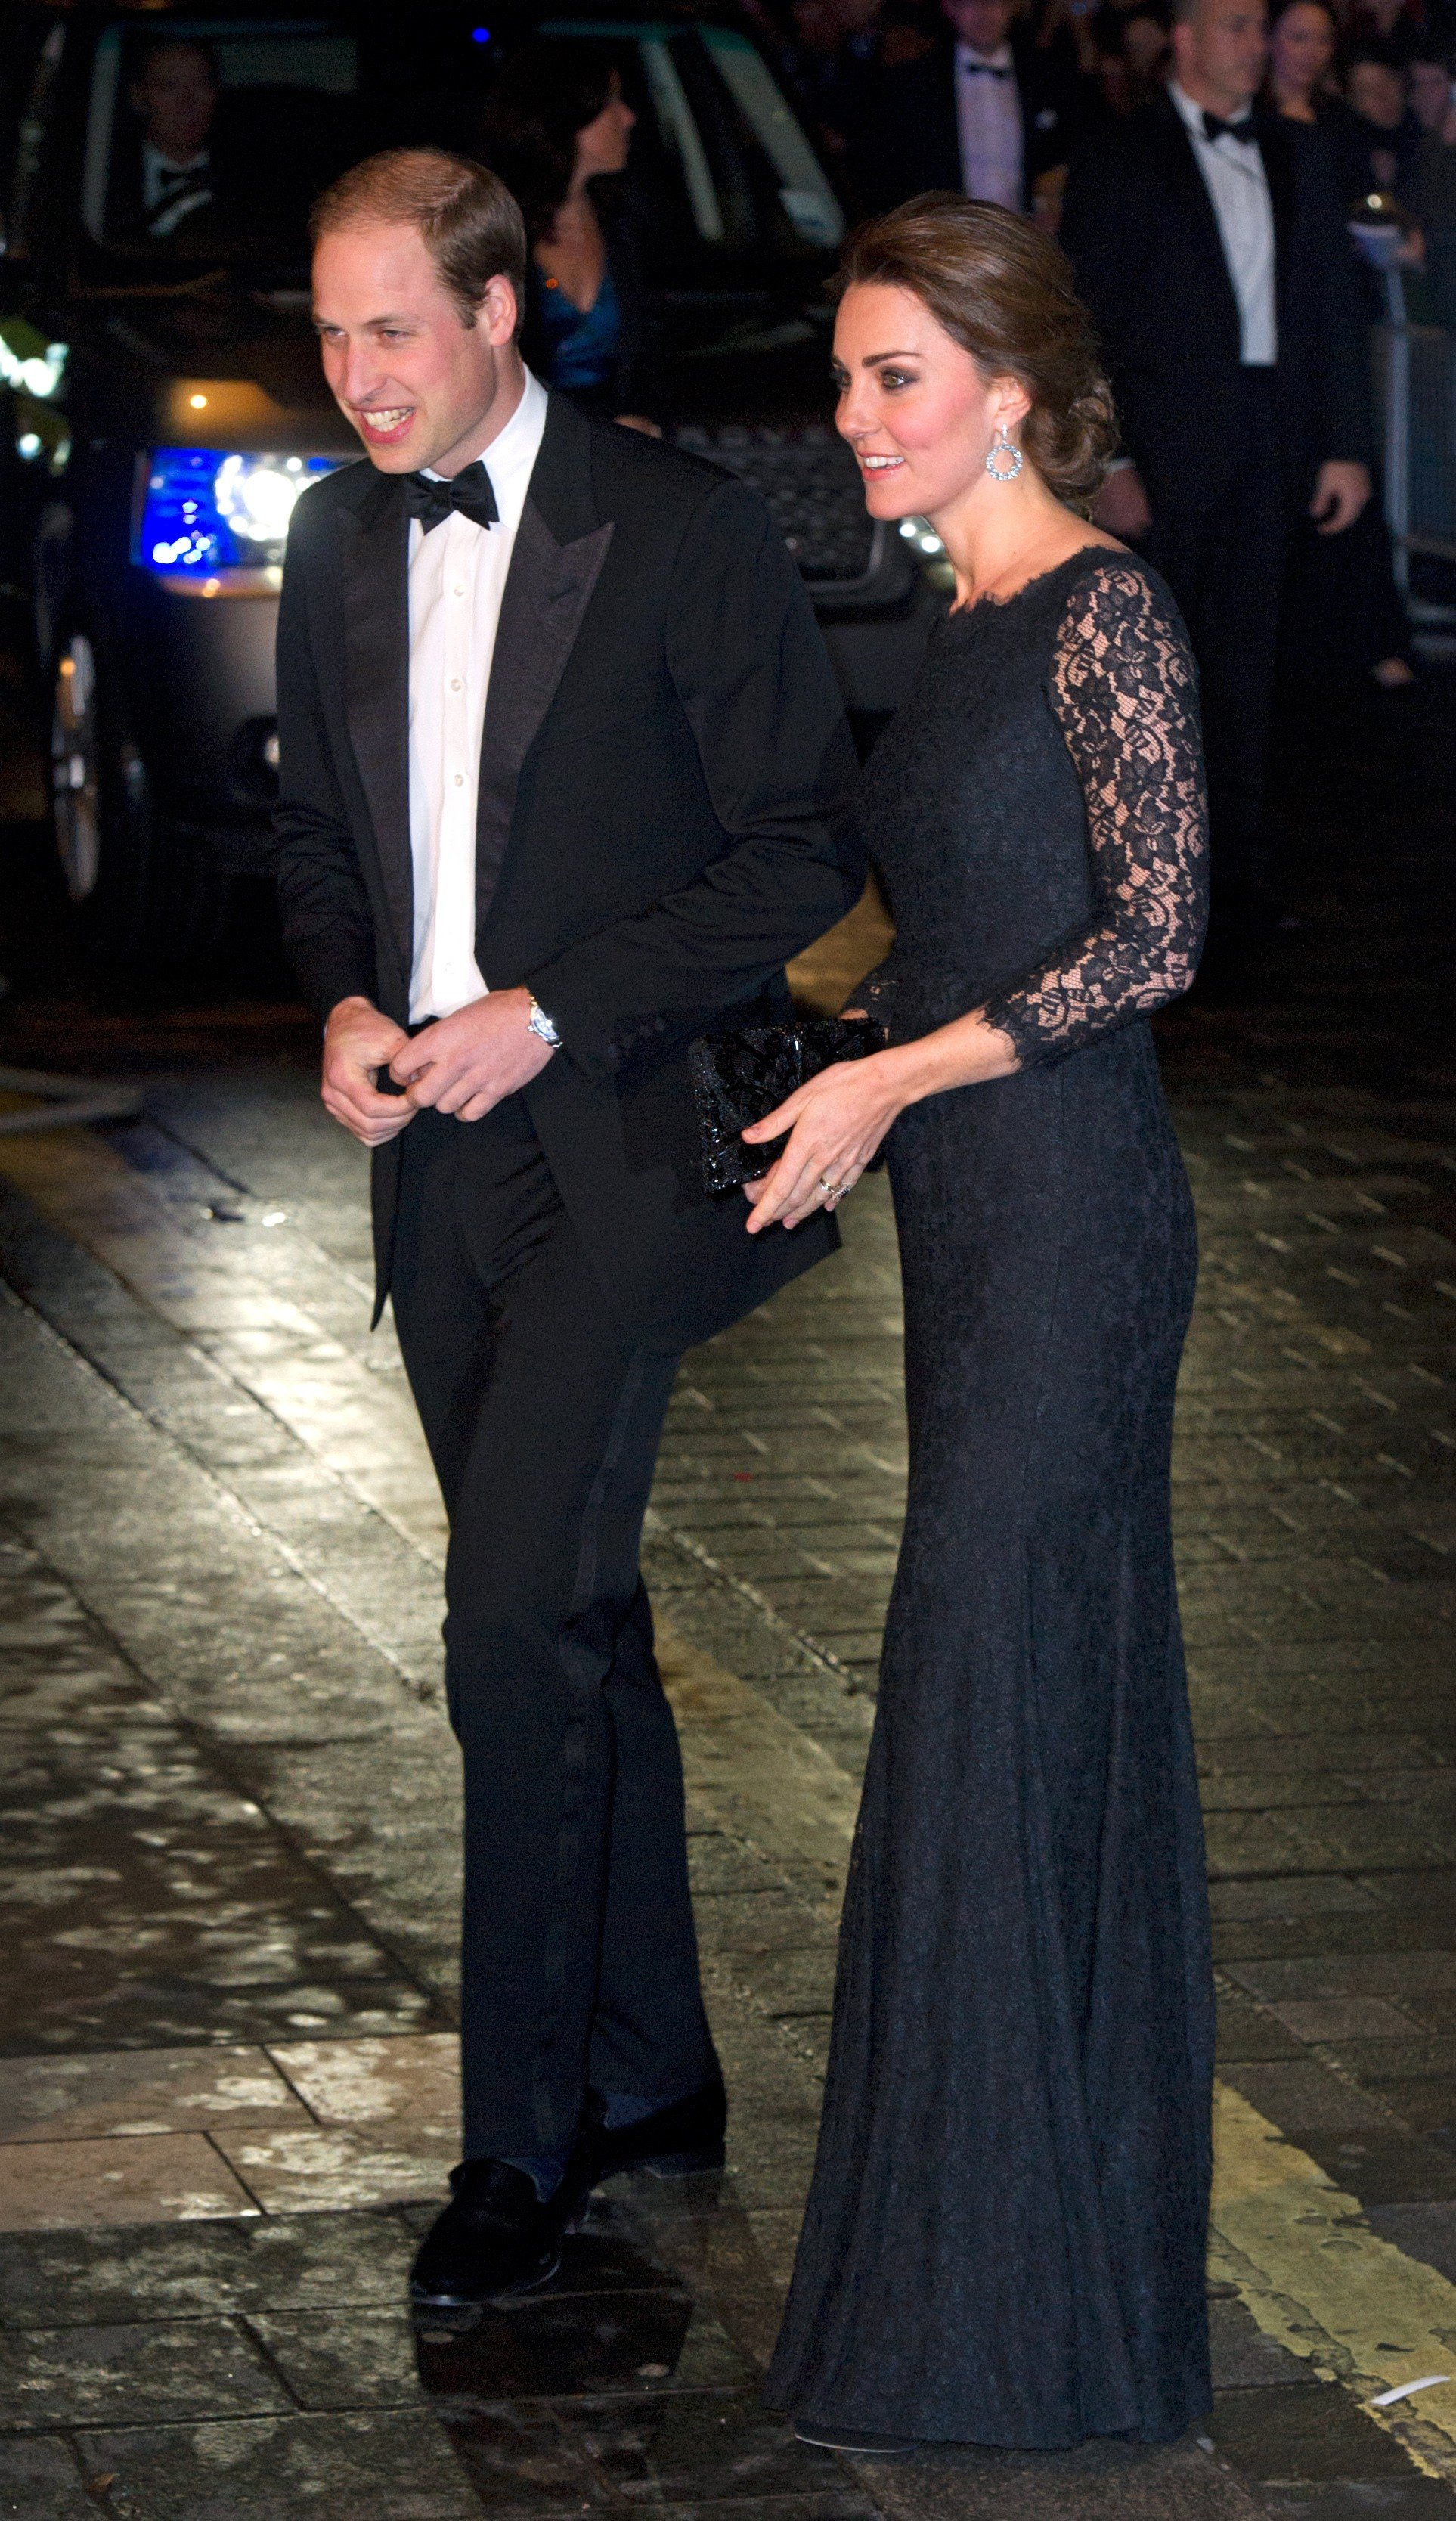 Catherine, Duchess of Cambridge and Prince William, Duke of Cambridge arrive at the Royal Variety Performance in London on Nov. 13, 2014.